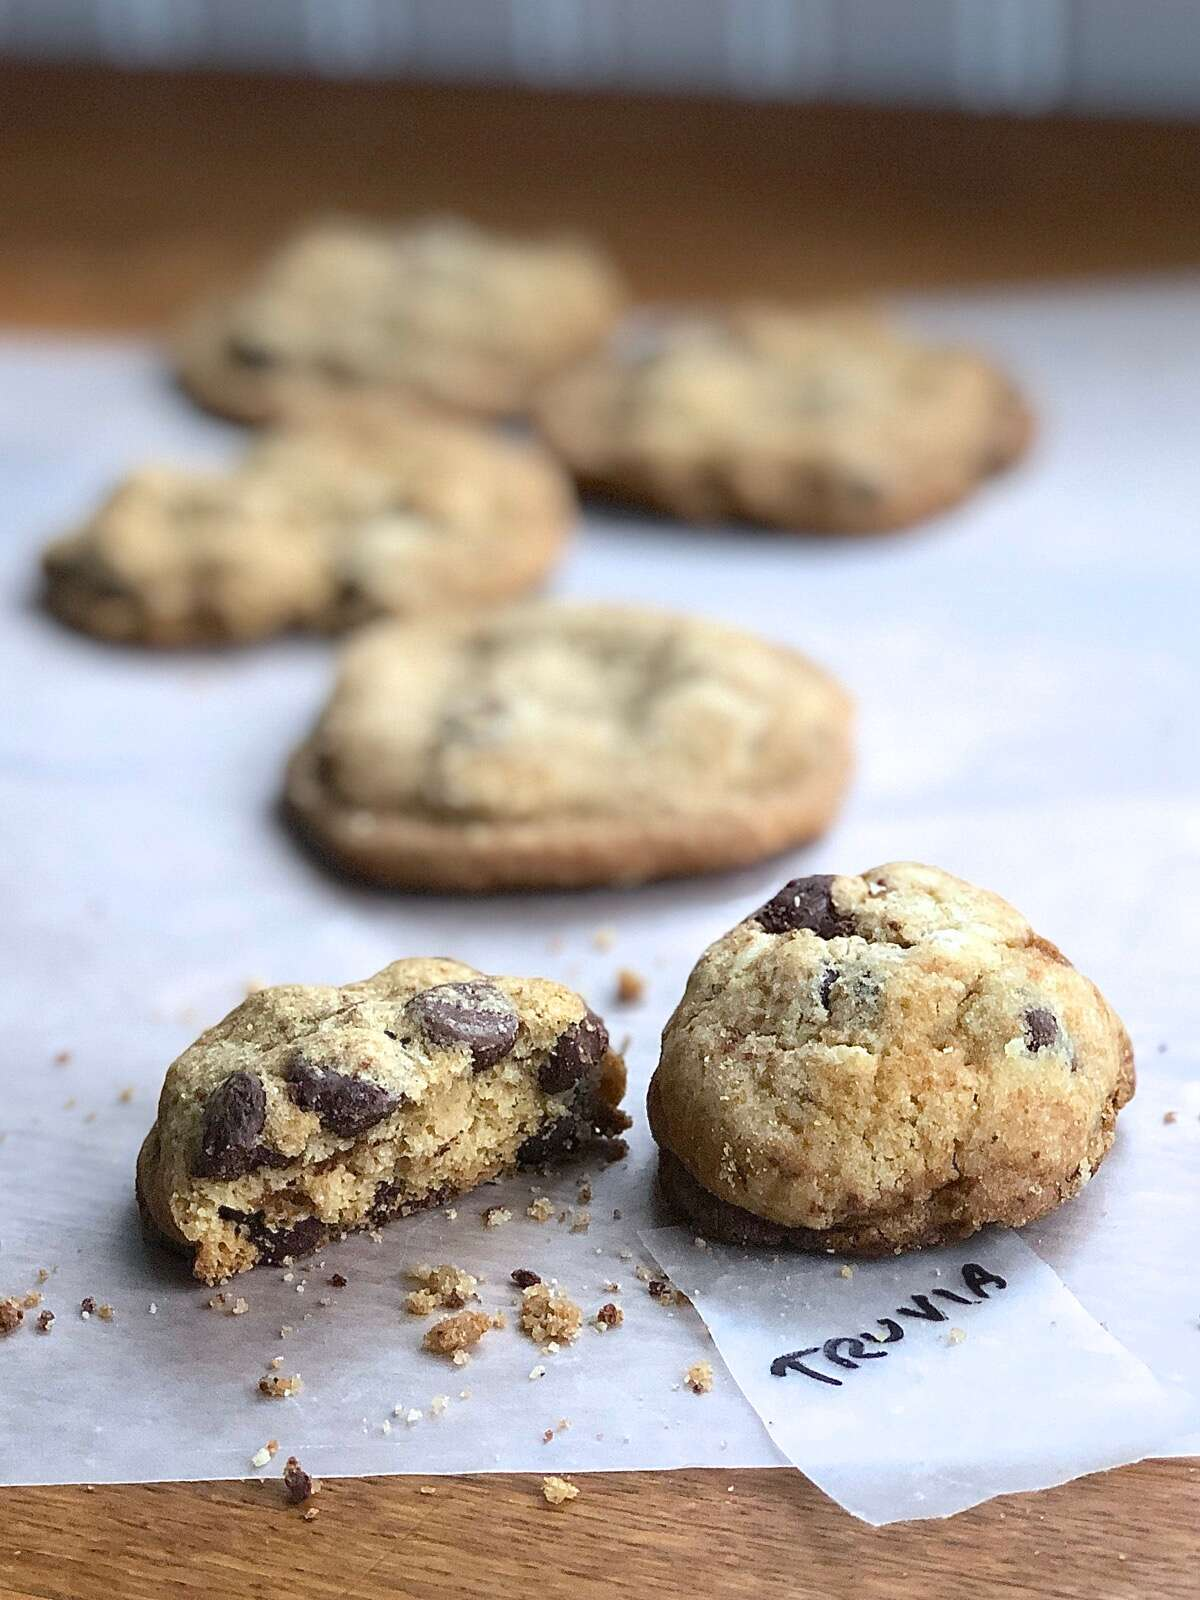 Chocolate chip cookies baked with Truvia, showing their thick texture and crumbliness.